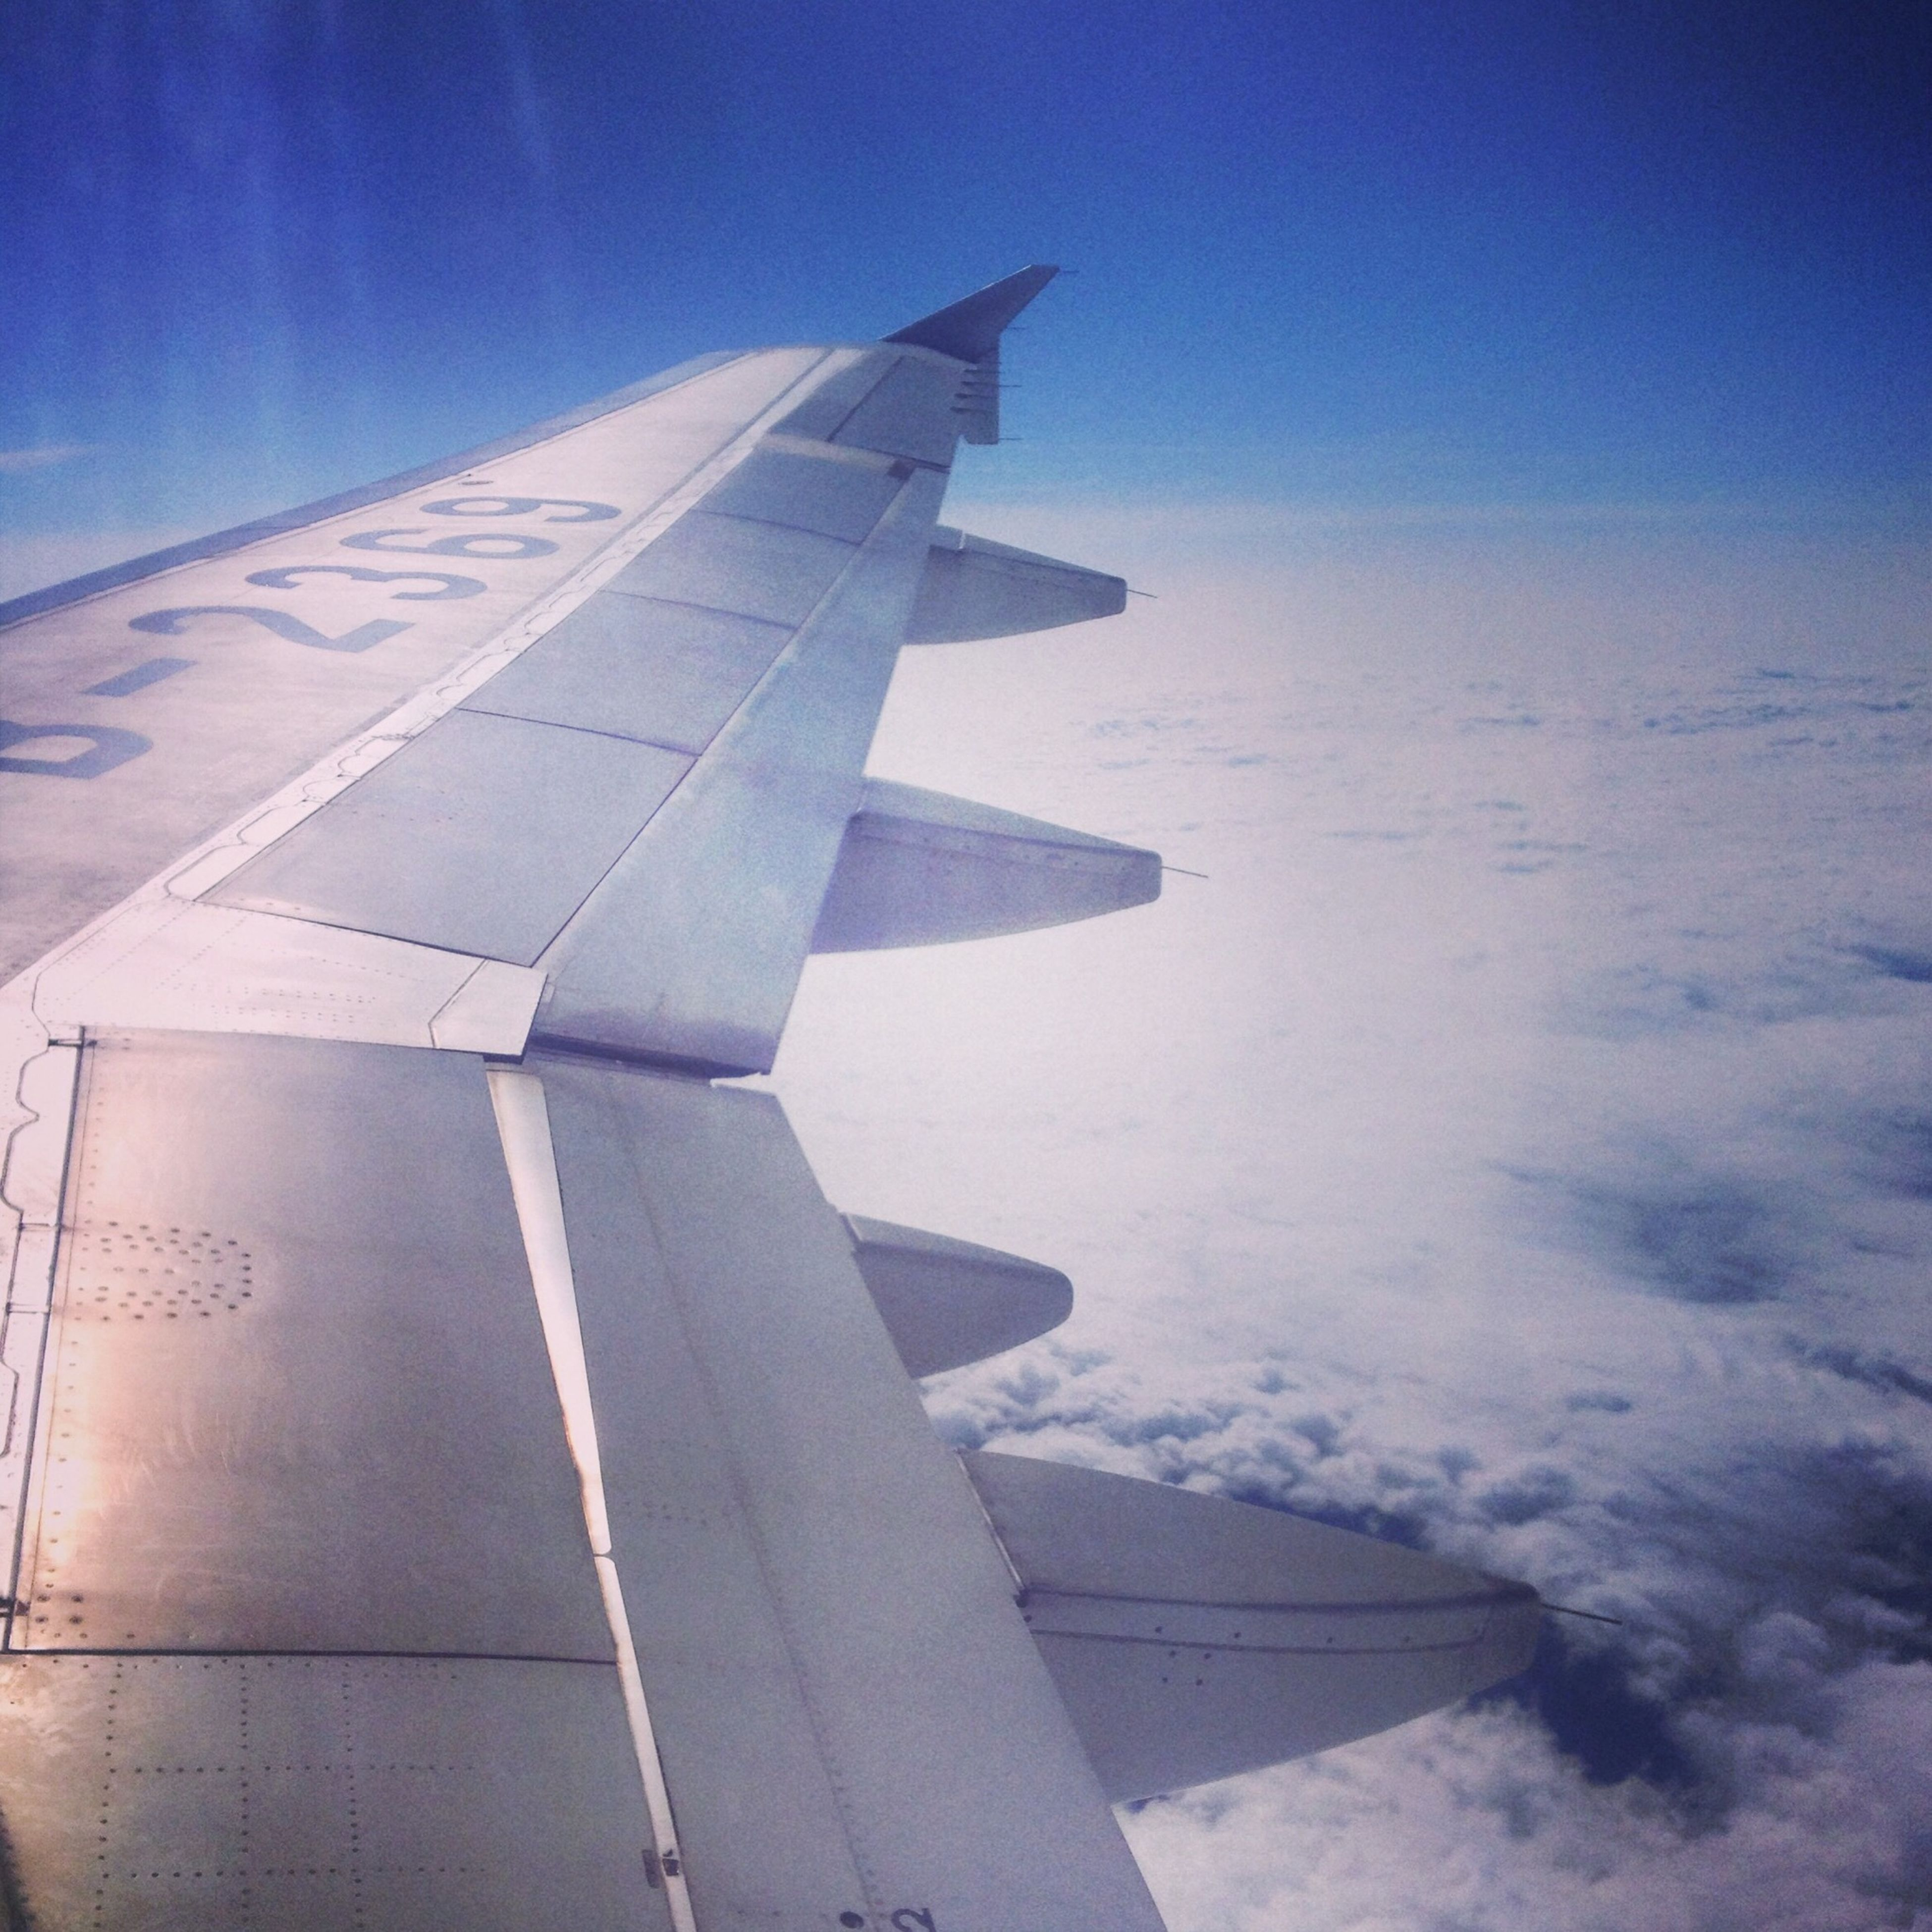 airplane, aircraft wing, air vehicle, transportation, flying, part of, cropped, blue, mode of transport, aerial view, travel, sky, clear sky, mid-air, journey, sunlight, on the move, outdoors, day, airplane wing